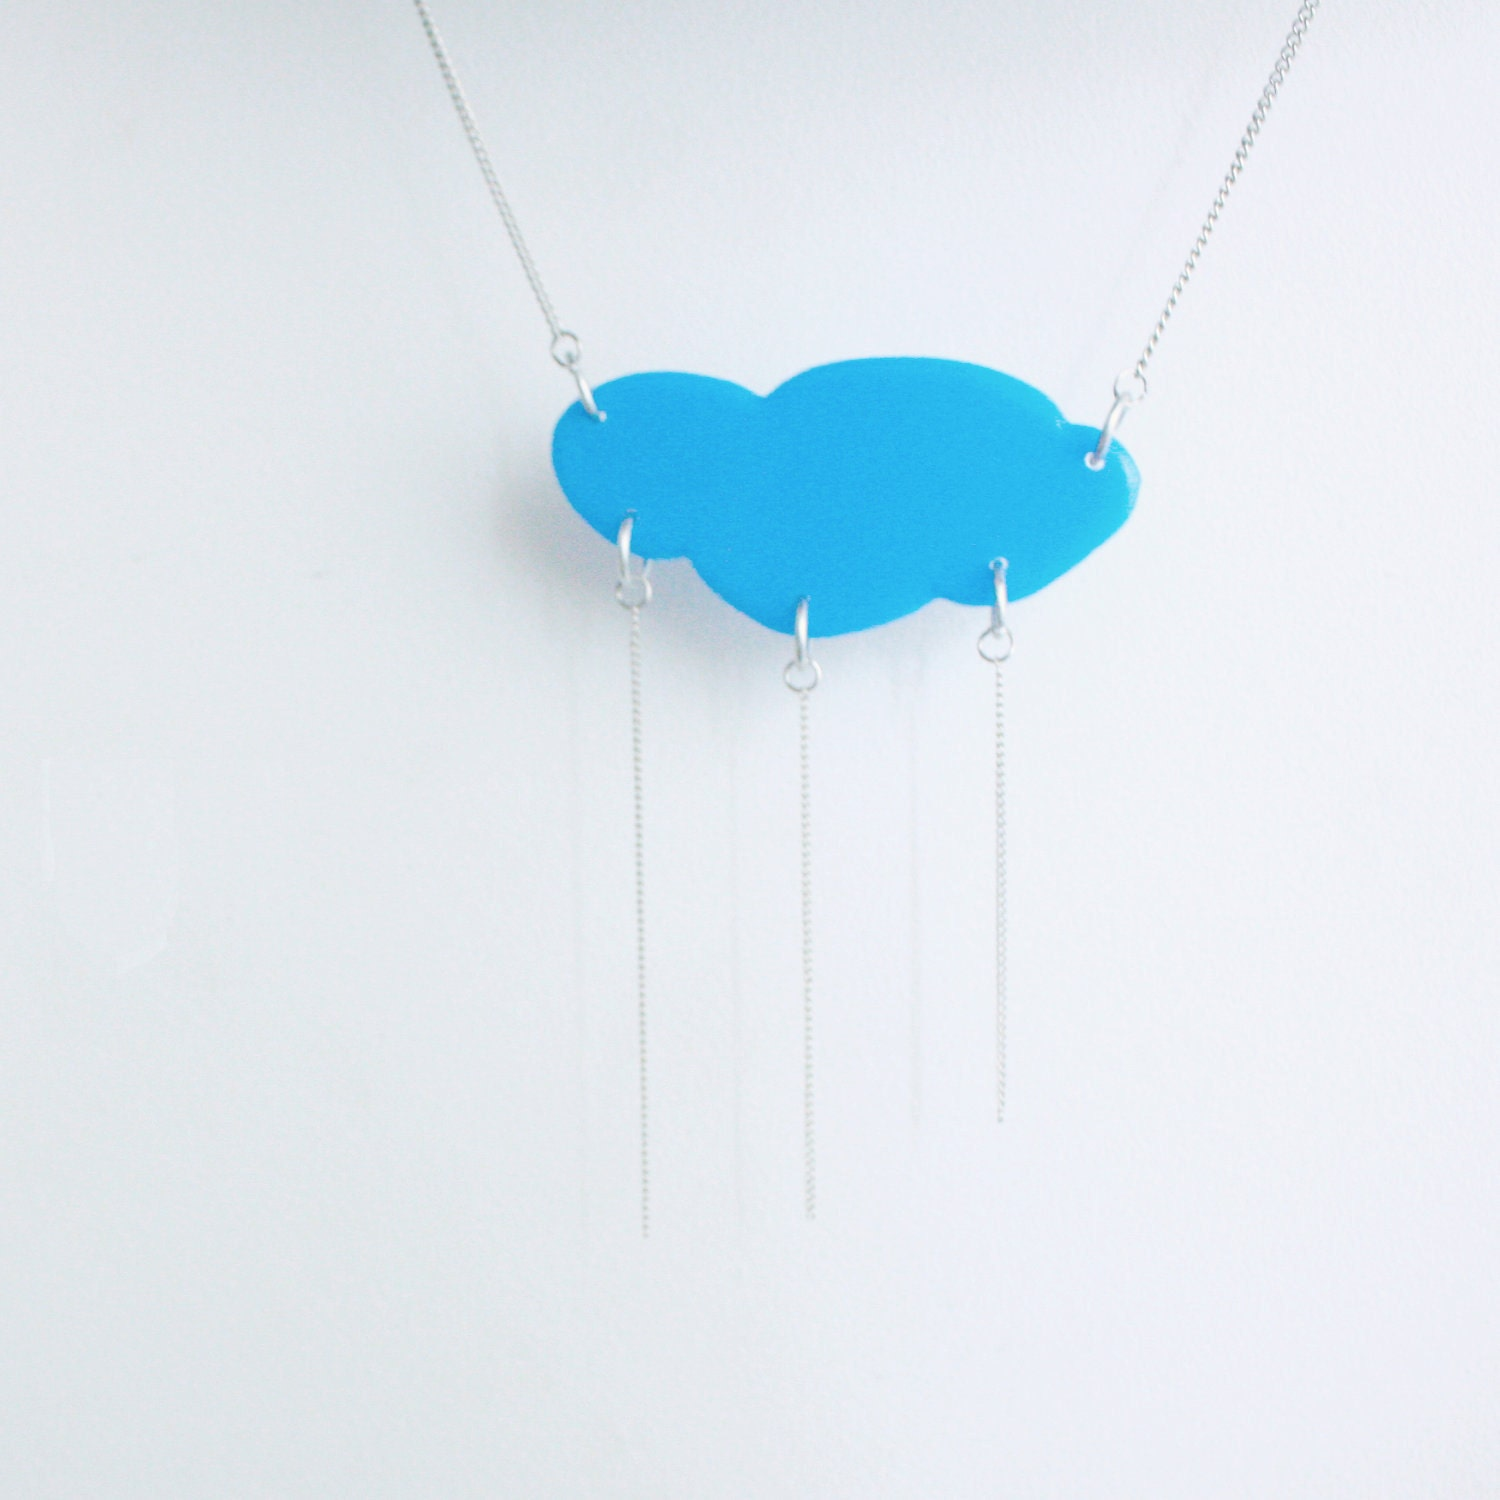 Blue Sky cloud statement neclace - Acrylic and silver plated metal - HelenaRibeiro